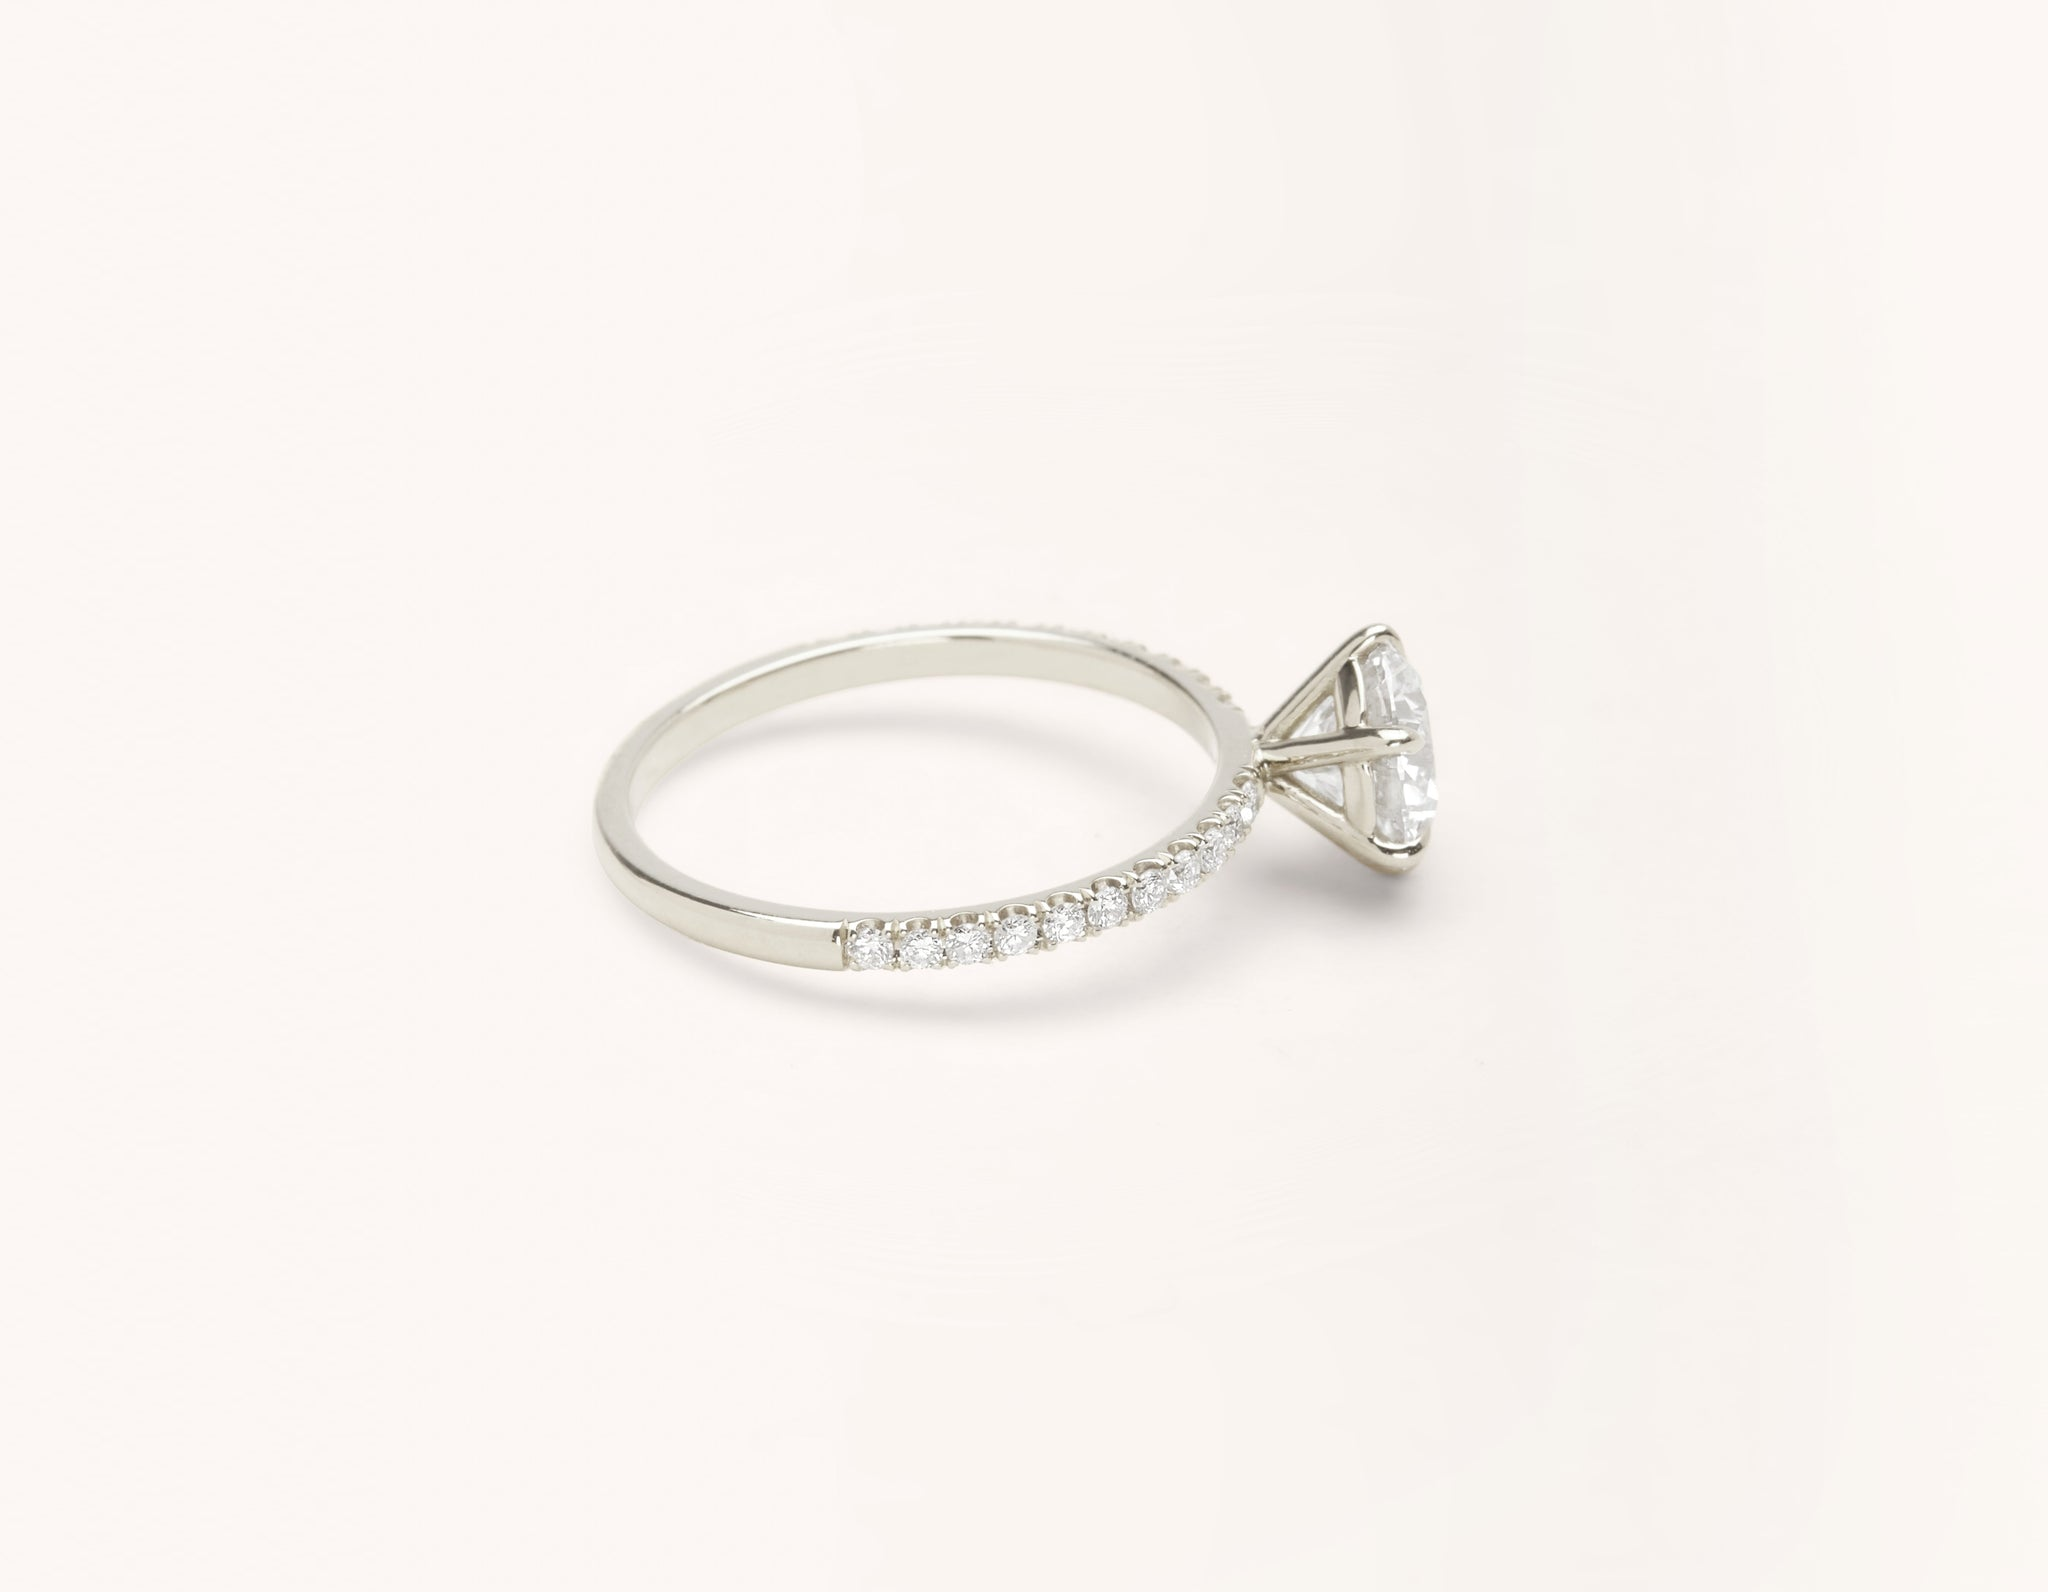 Simple modern 18k solid white gold 1 carat round brilliant Solitaire diamond pave engagement ring Vrai & Oro